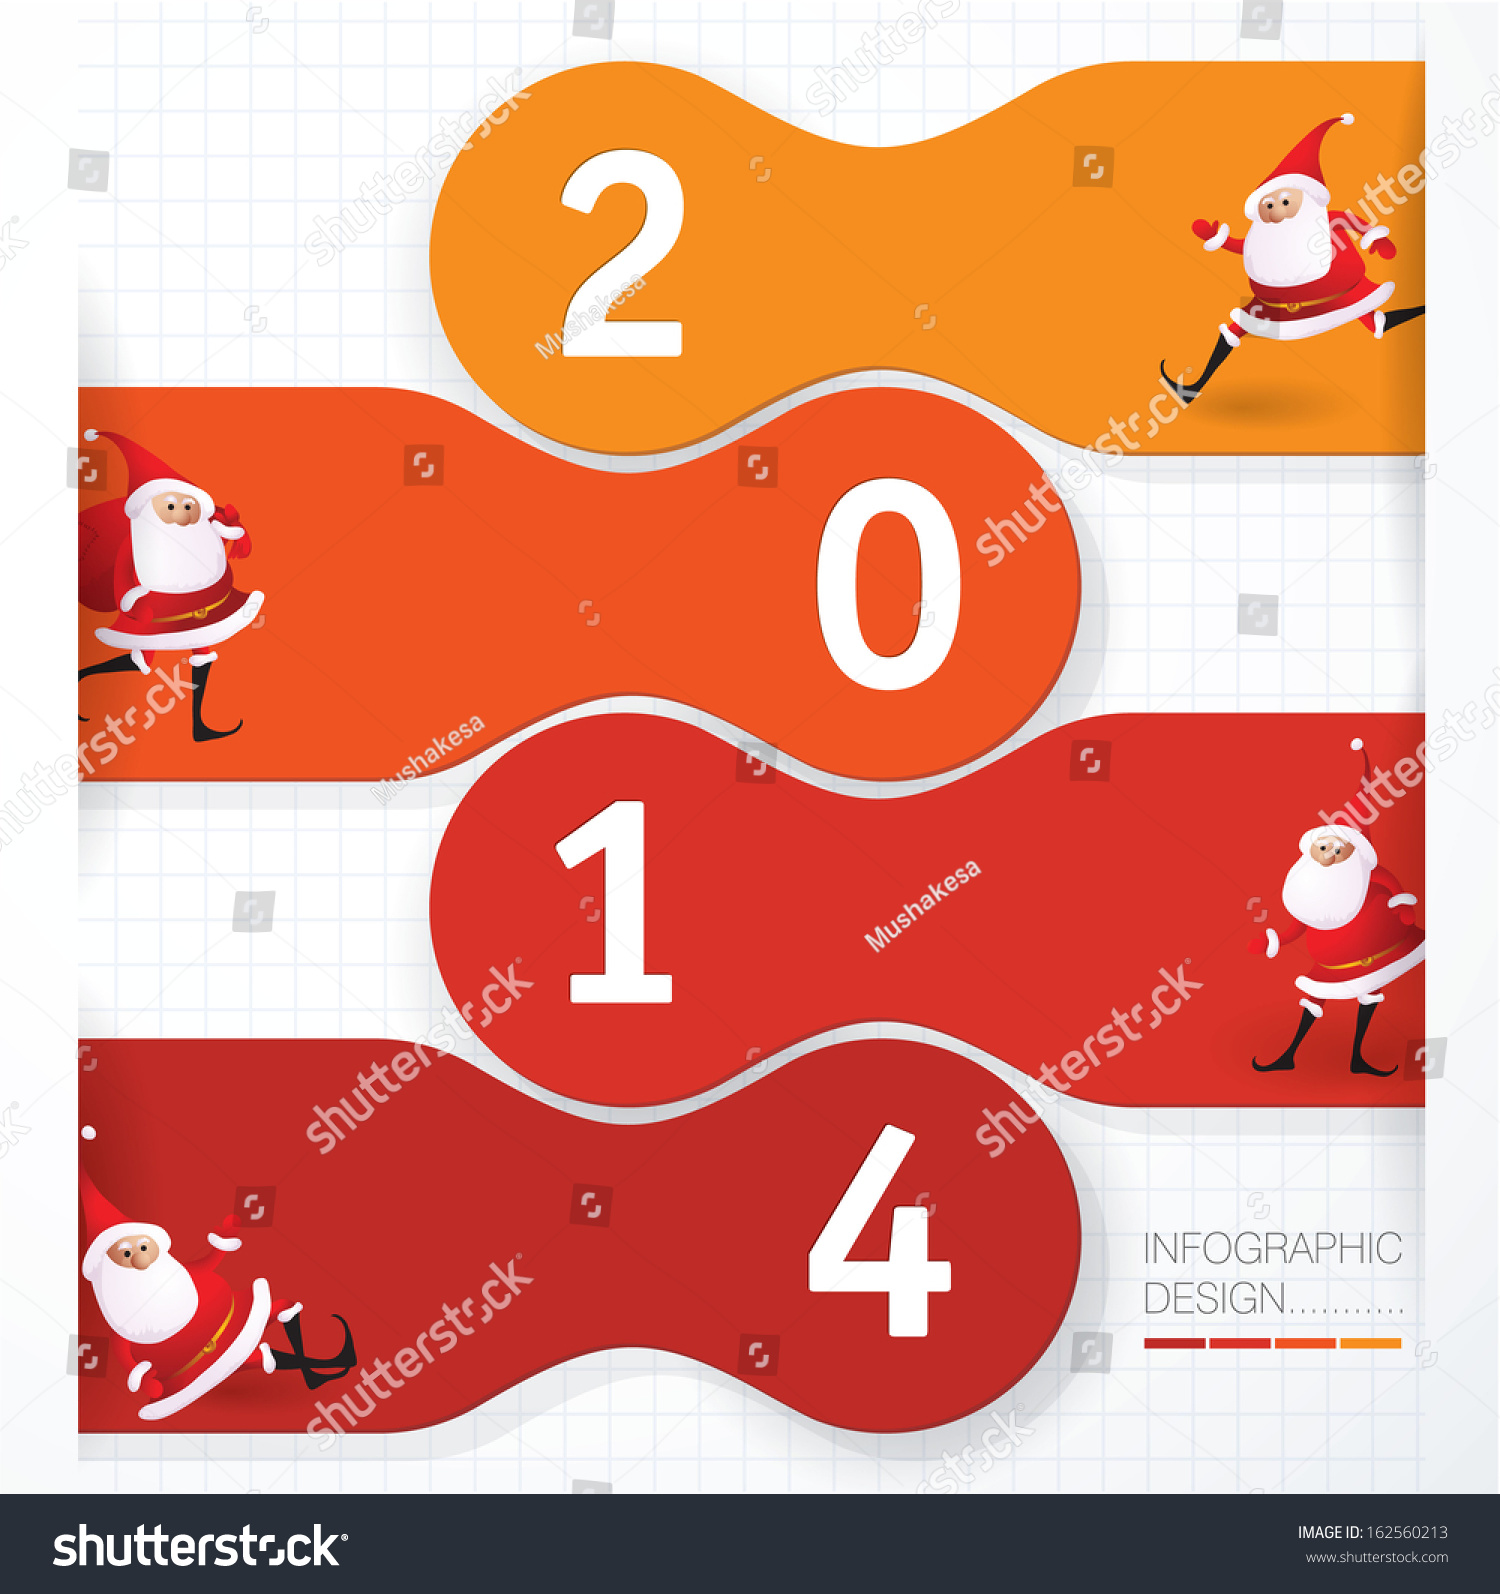 2014 new year vector presentation template stock vector 162560213, Presentation templates